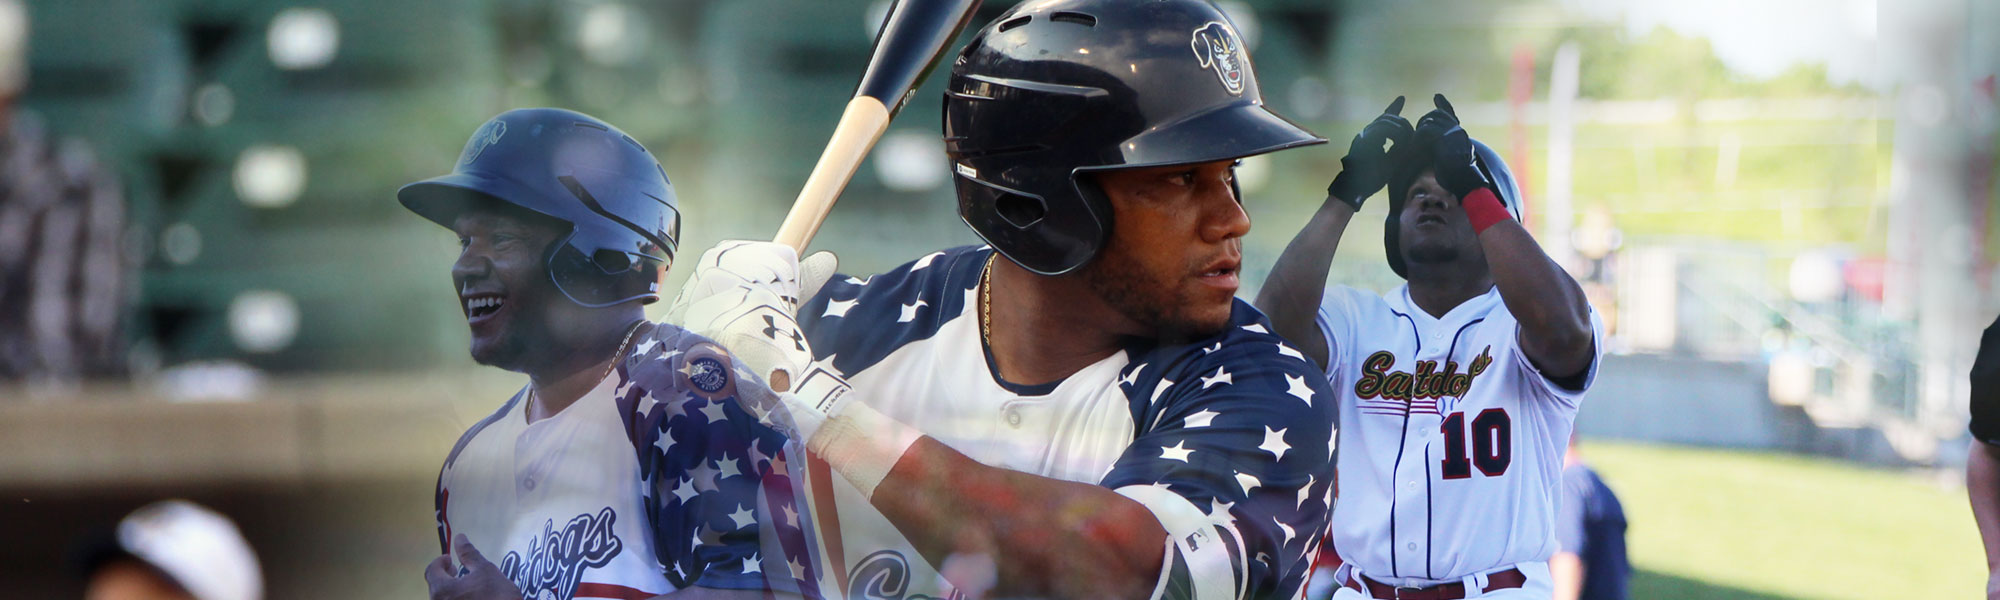 Curt Smith Player of the Month Saltdogs News